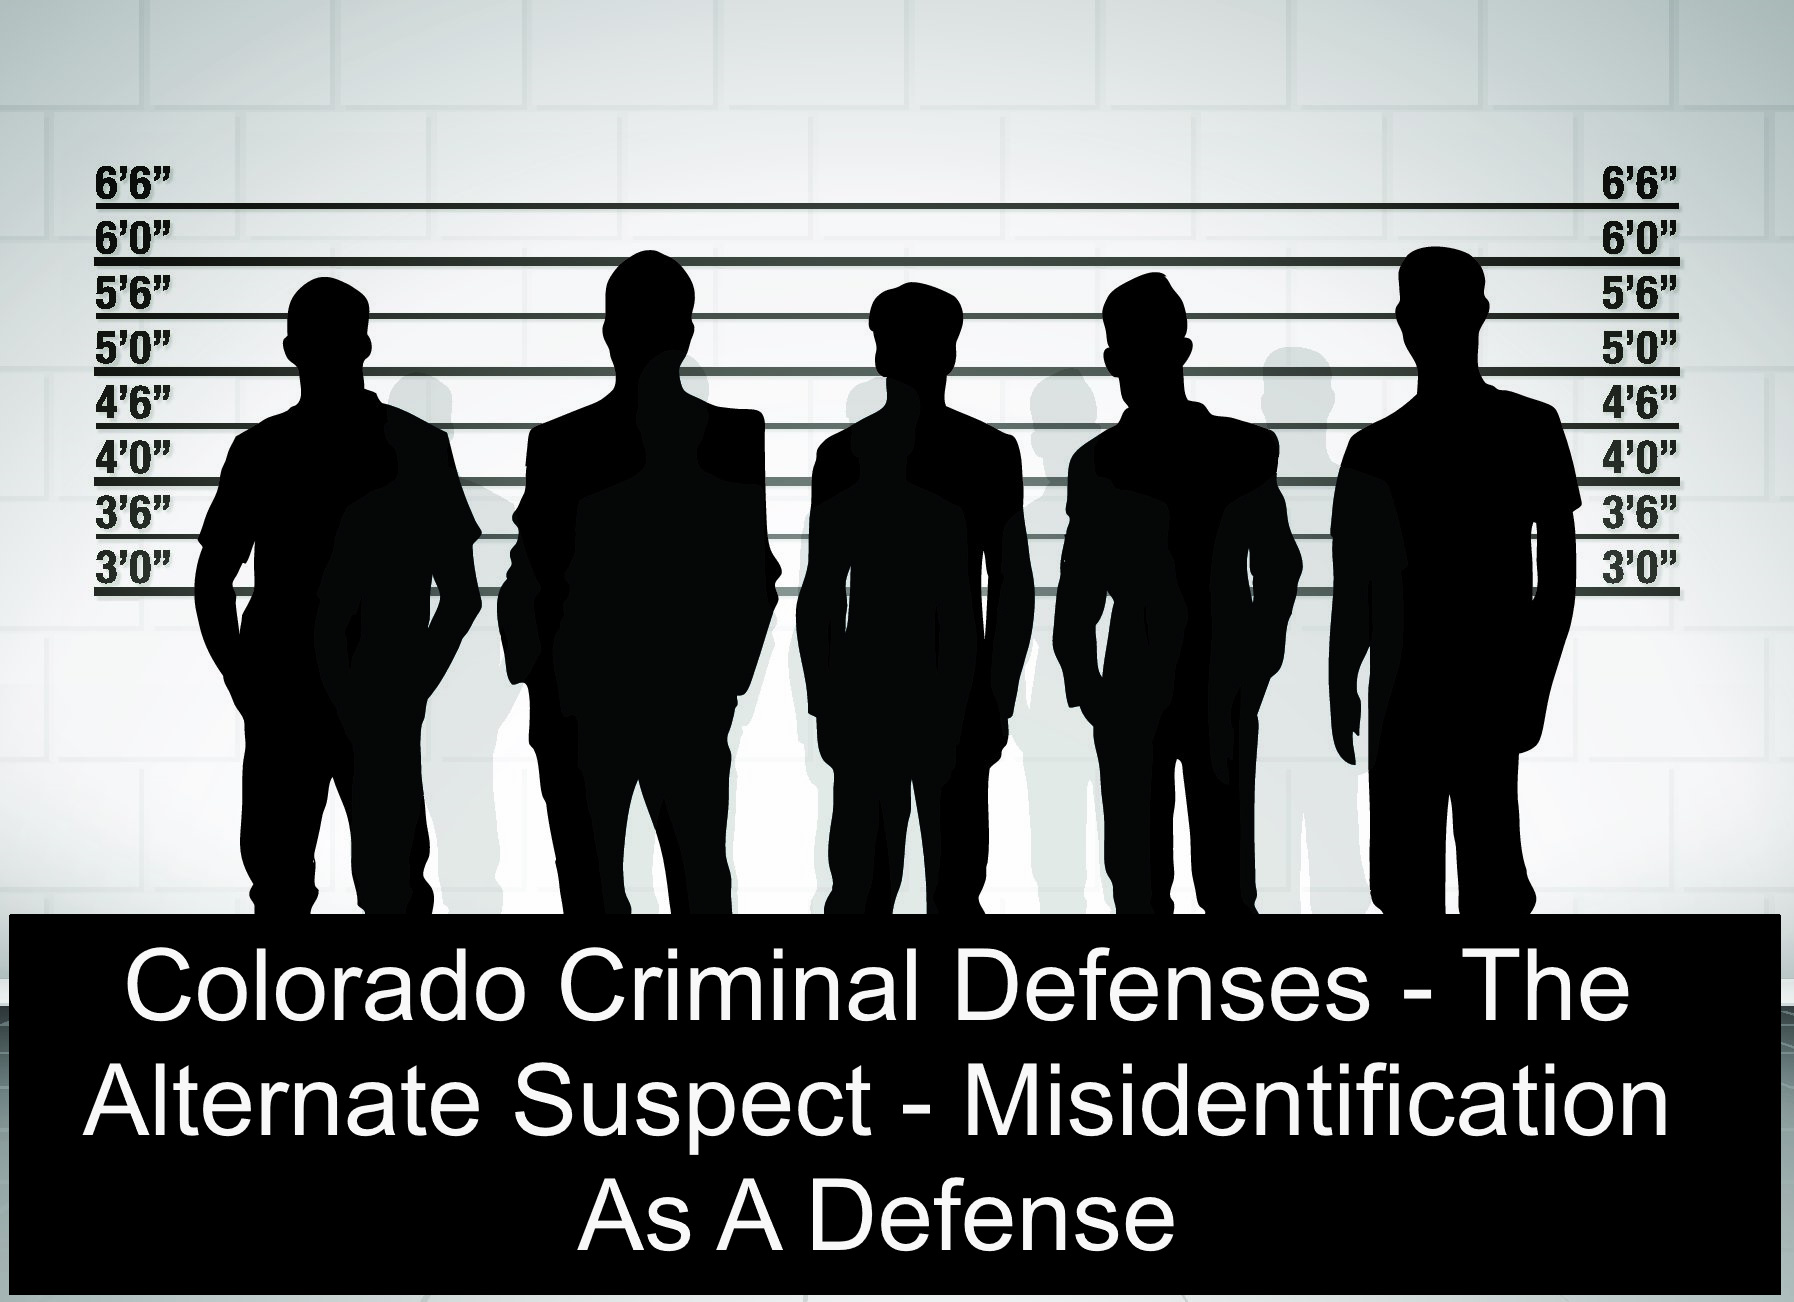 Colorado Criminal Defenses - The Alternate Suspect - Misidentification As A Defense